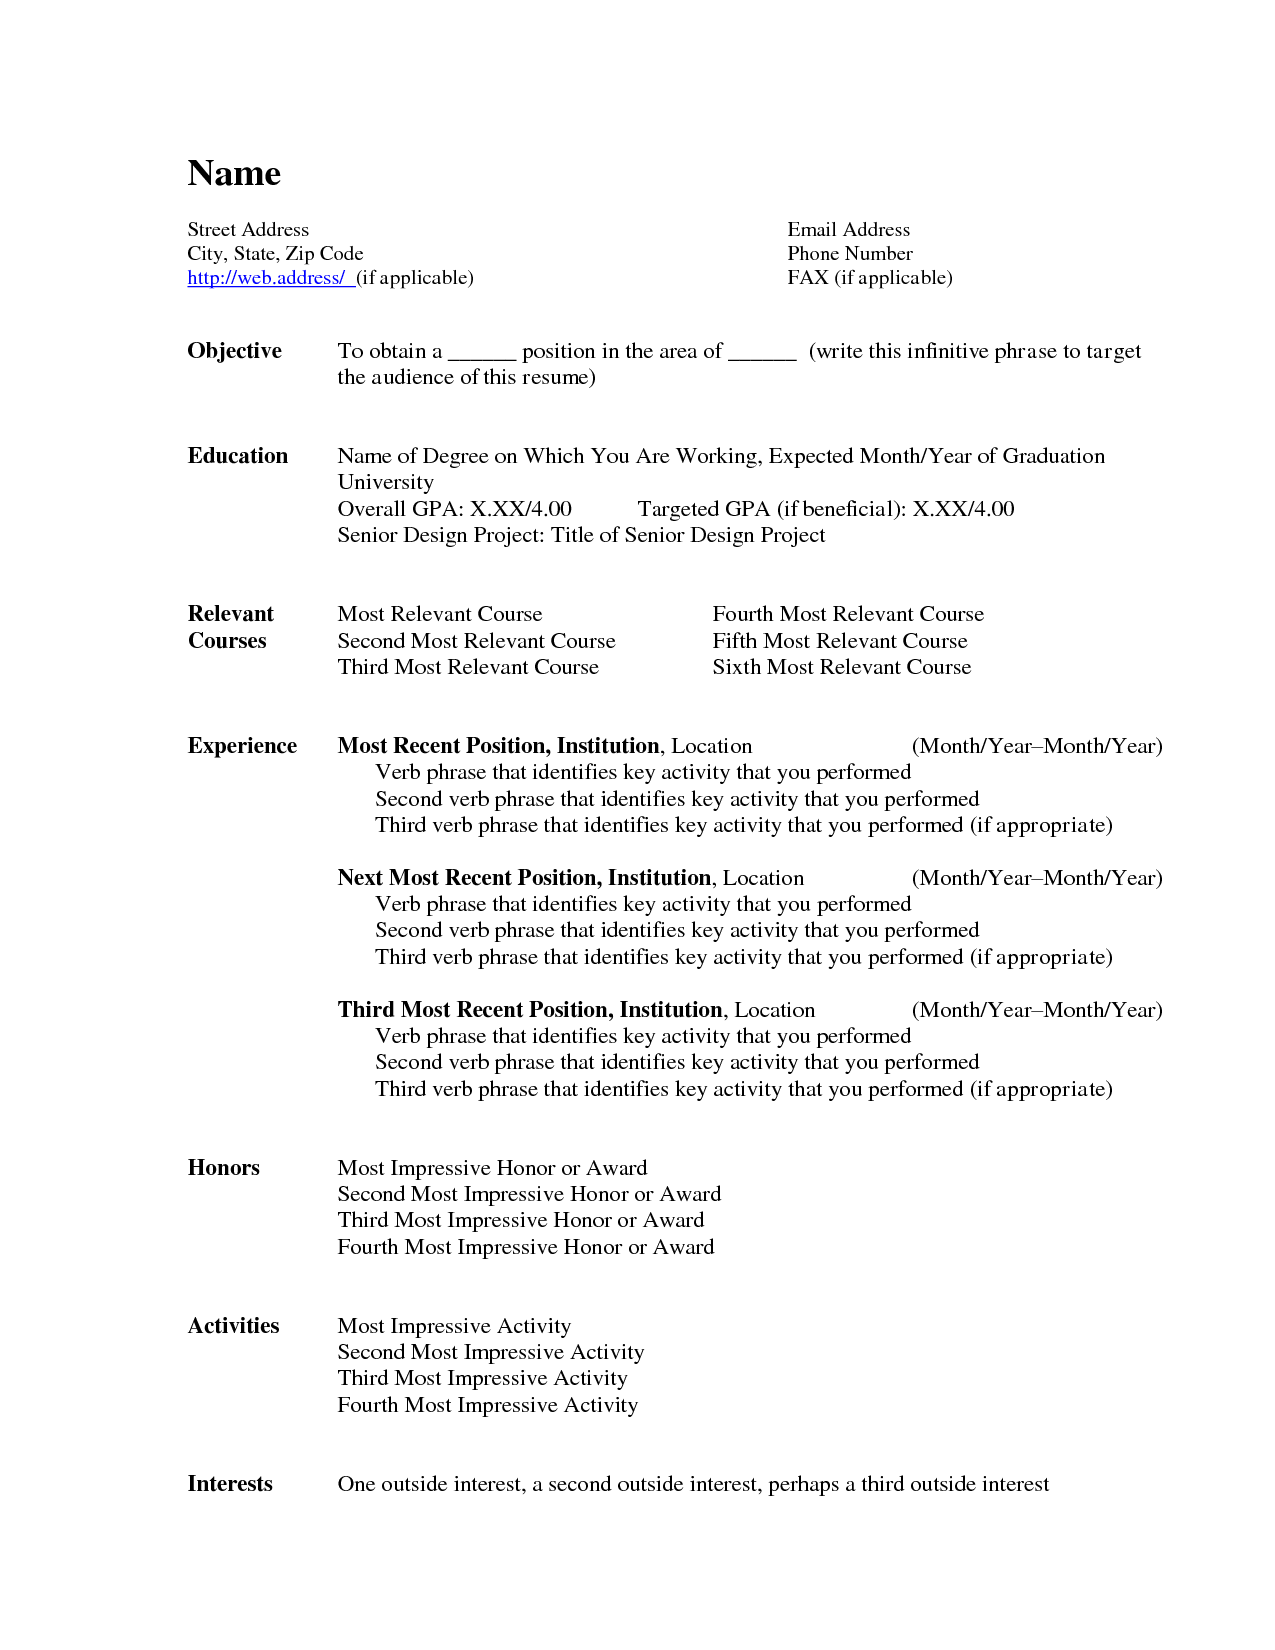 New Ms Word Resume Format Ms Word Resume Format - Resume Template Online